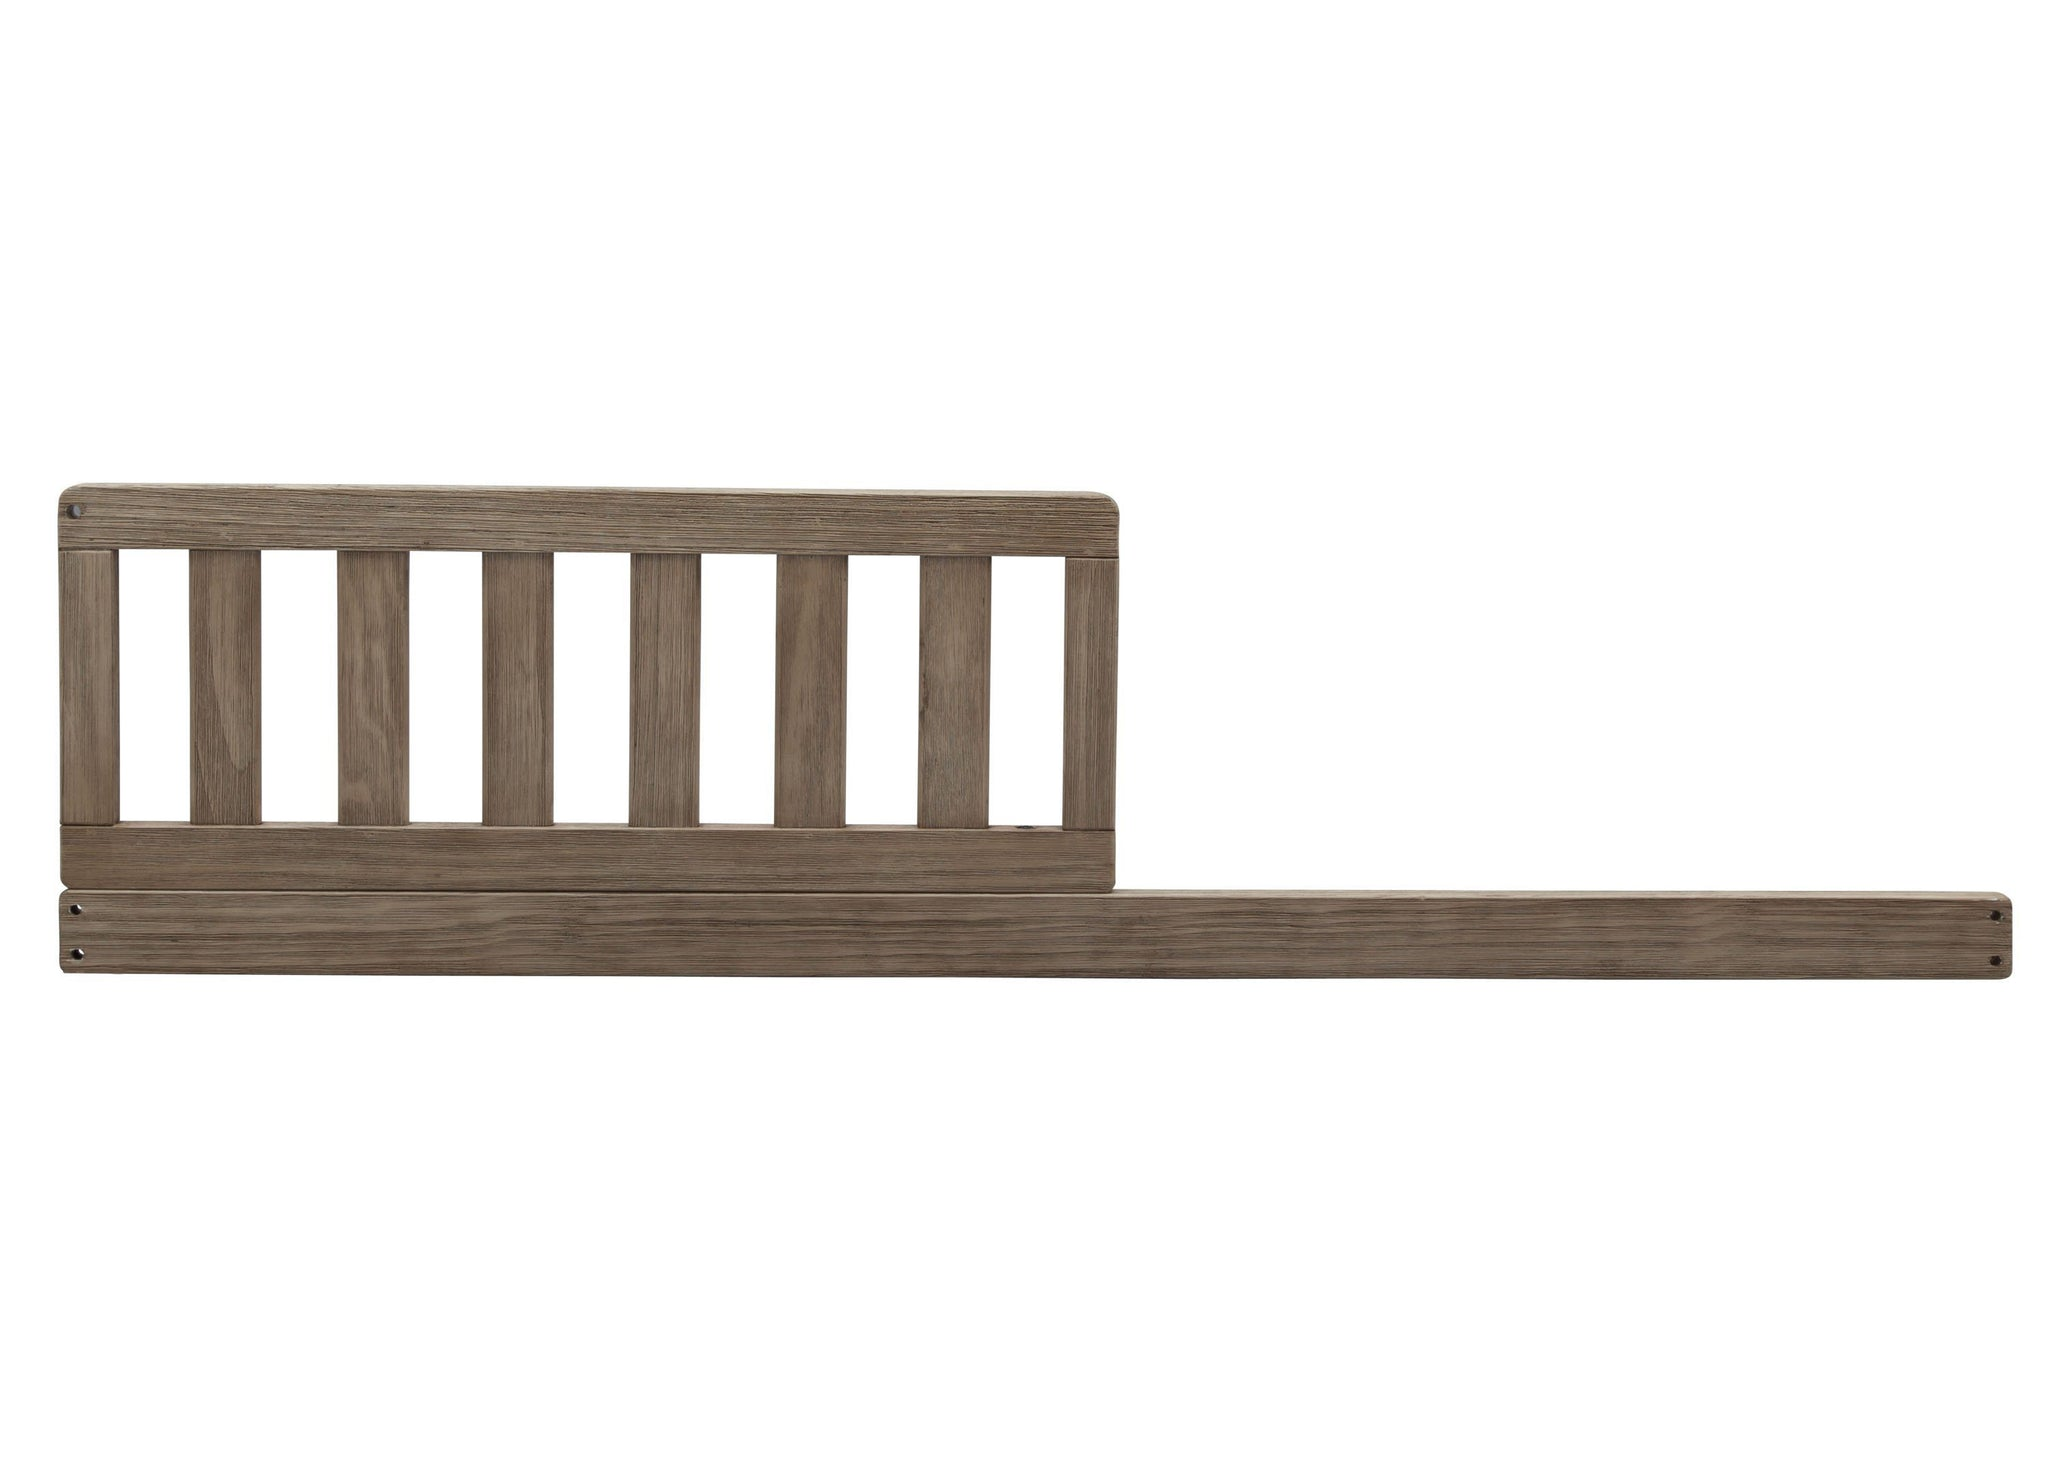 Serta Daybed/Toddler Guardrail Kit (703725) Rustic Whitewash (112ST) Front View a0a